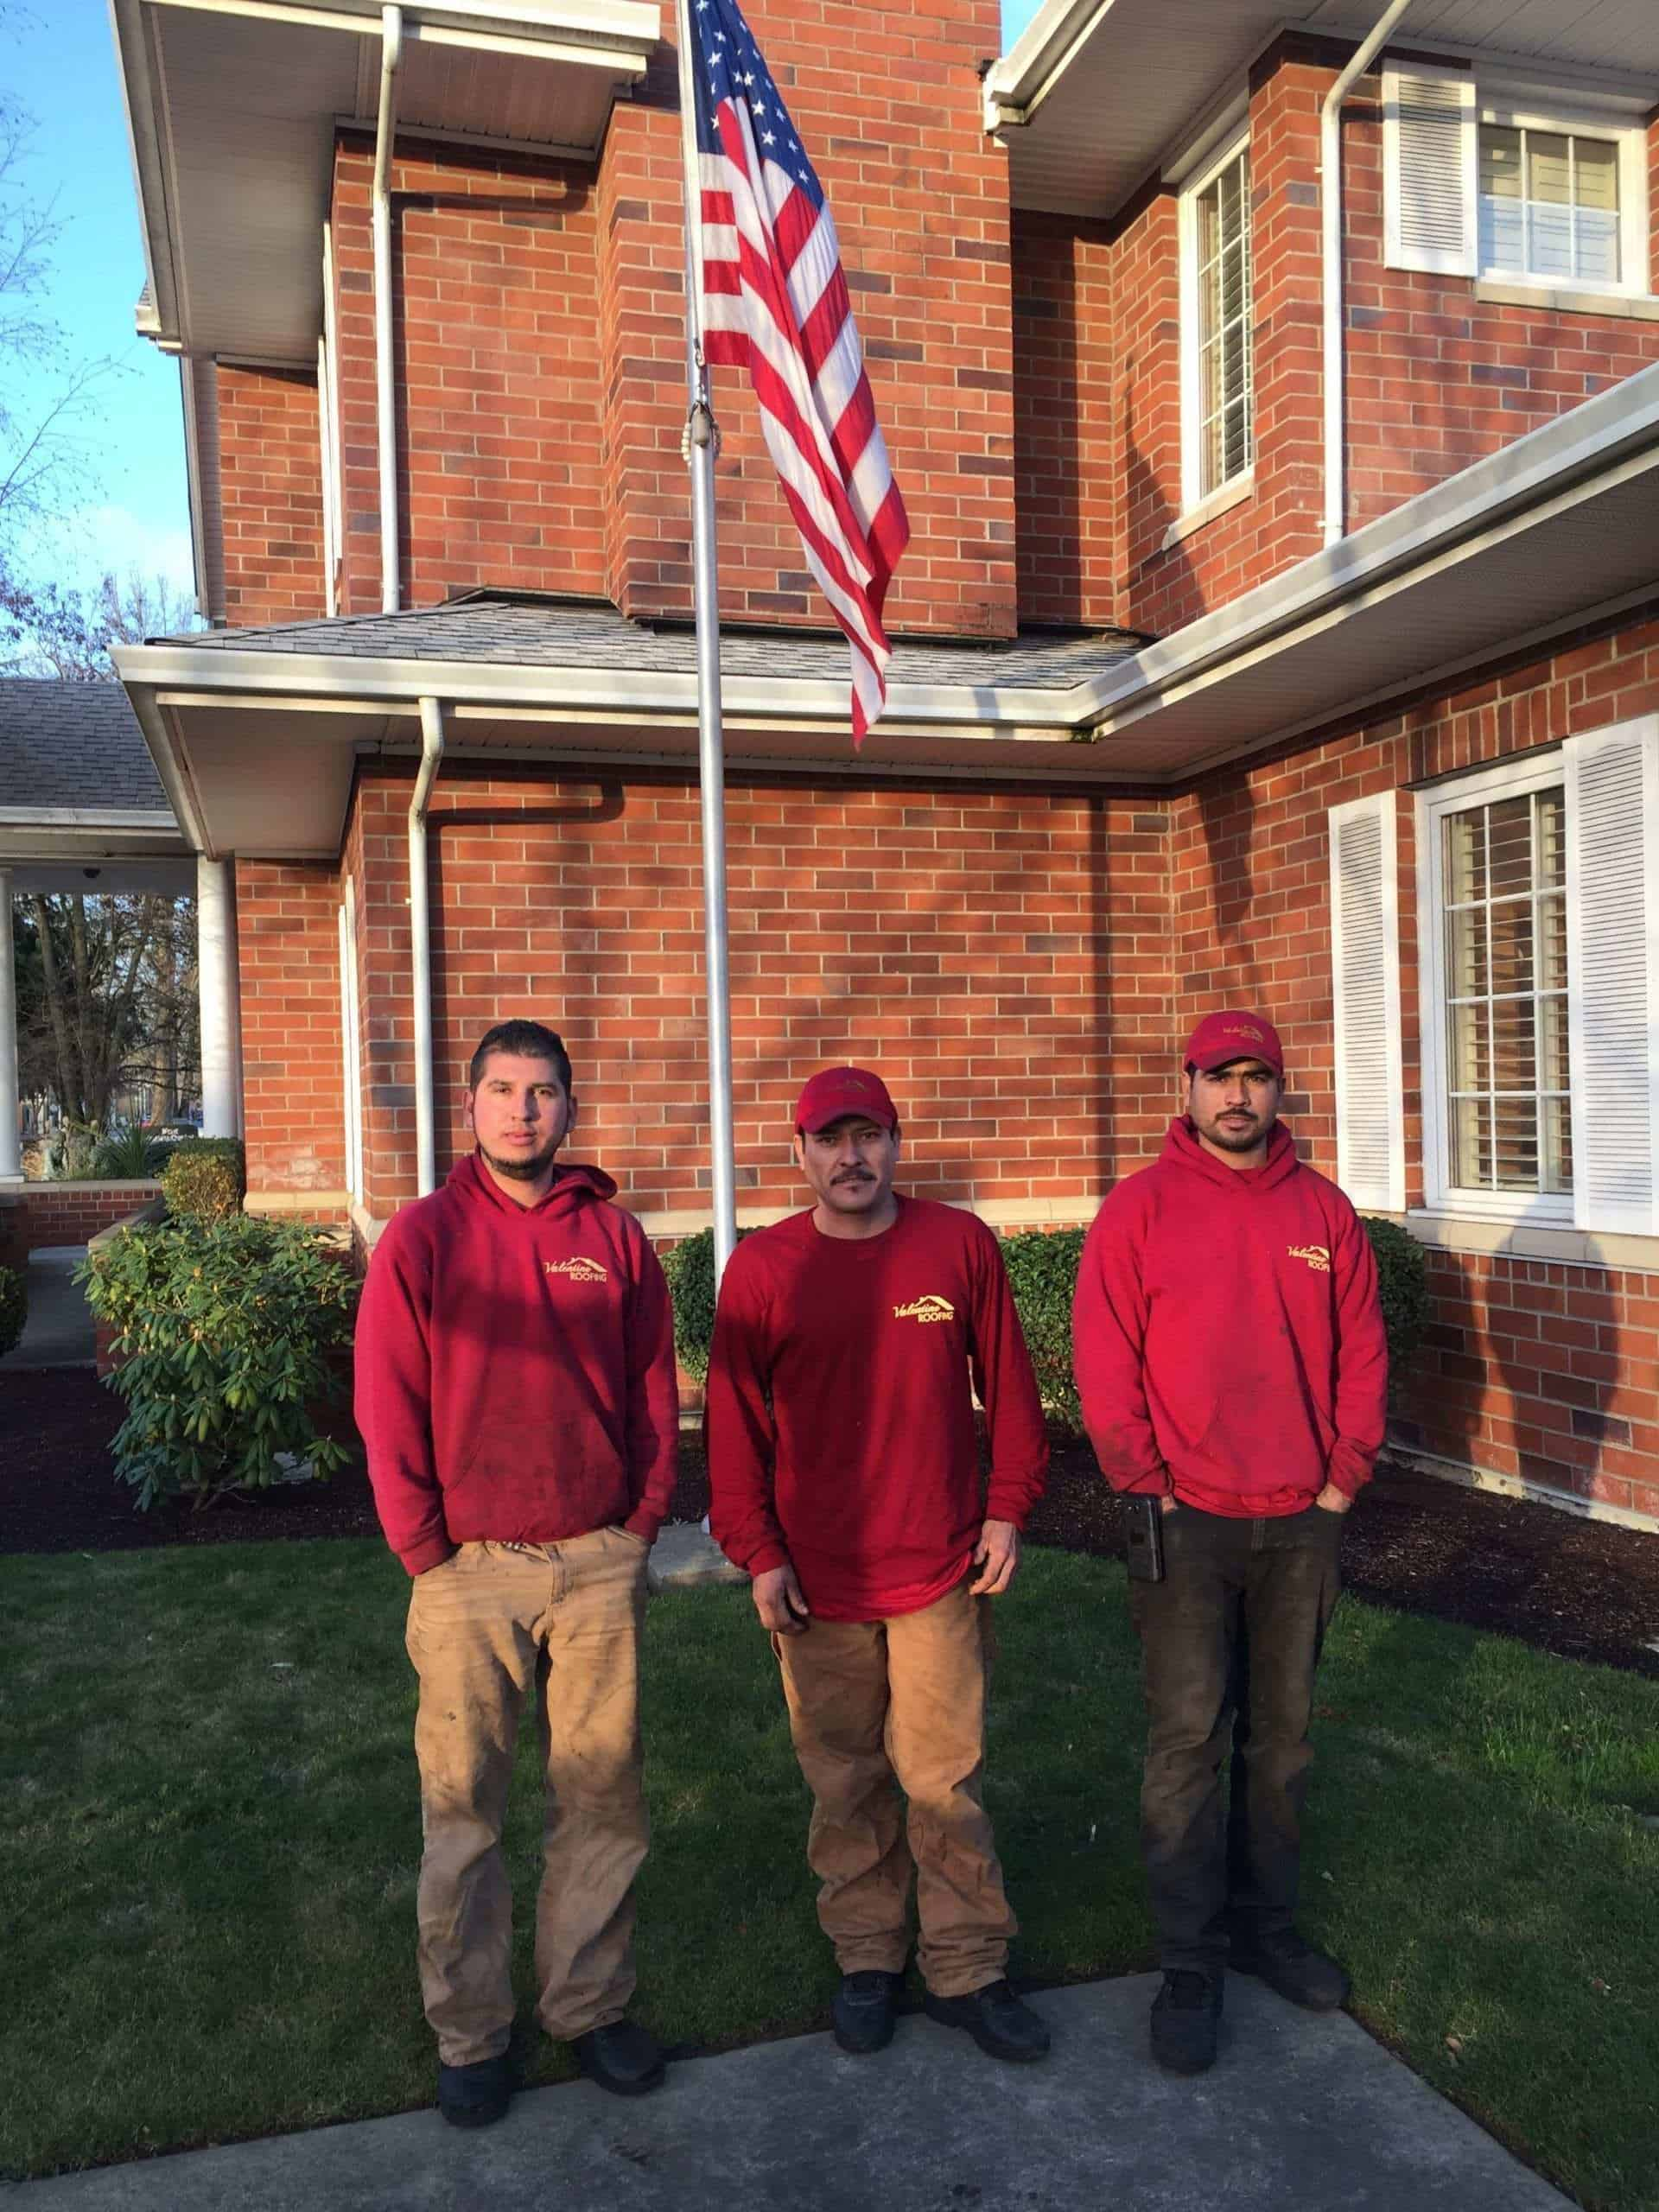 3 male roofers standing under a flag of the United States